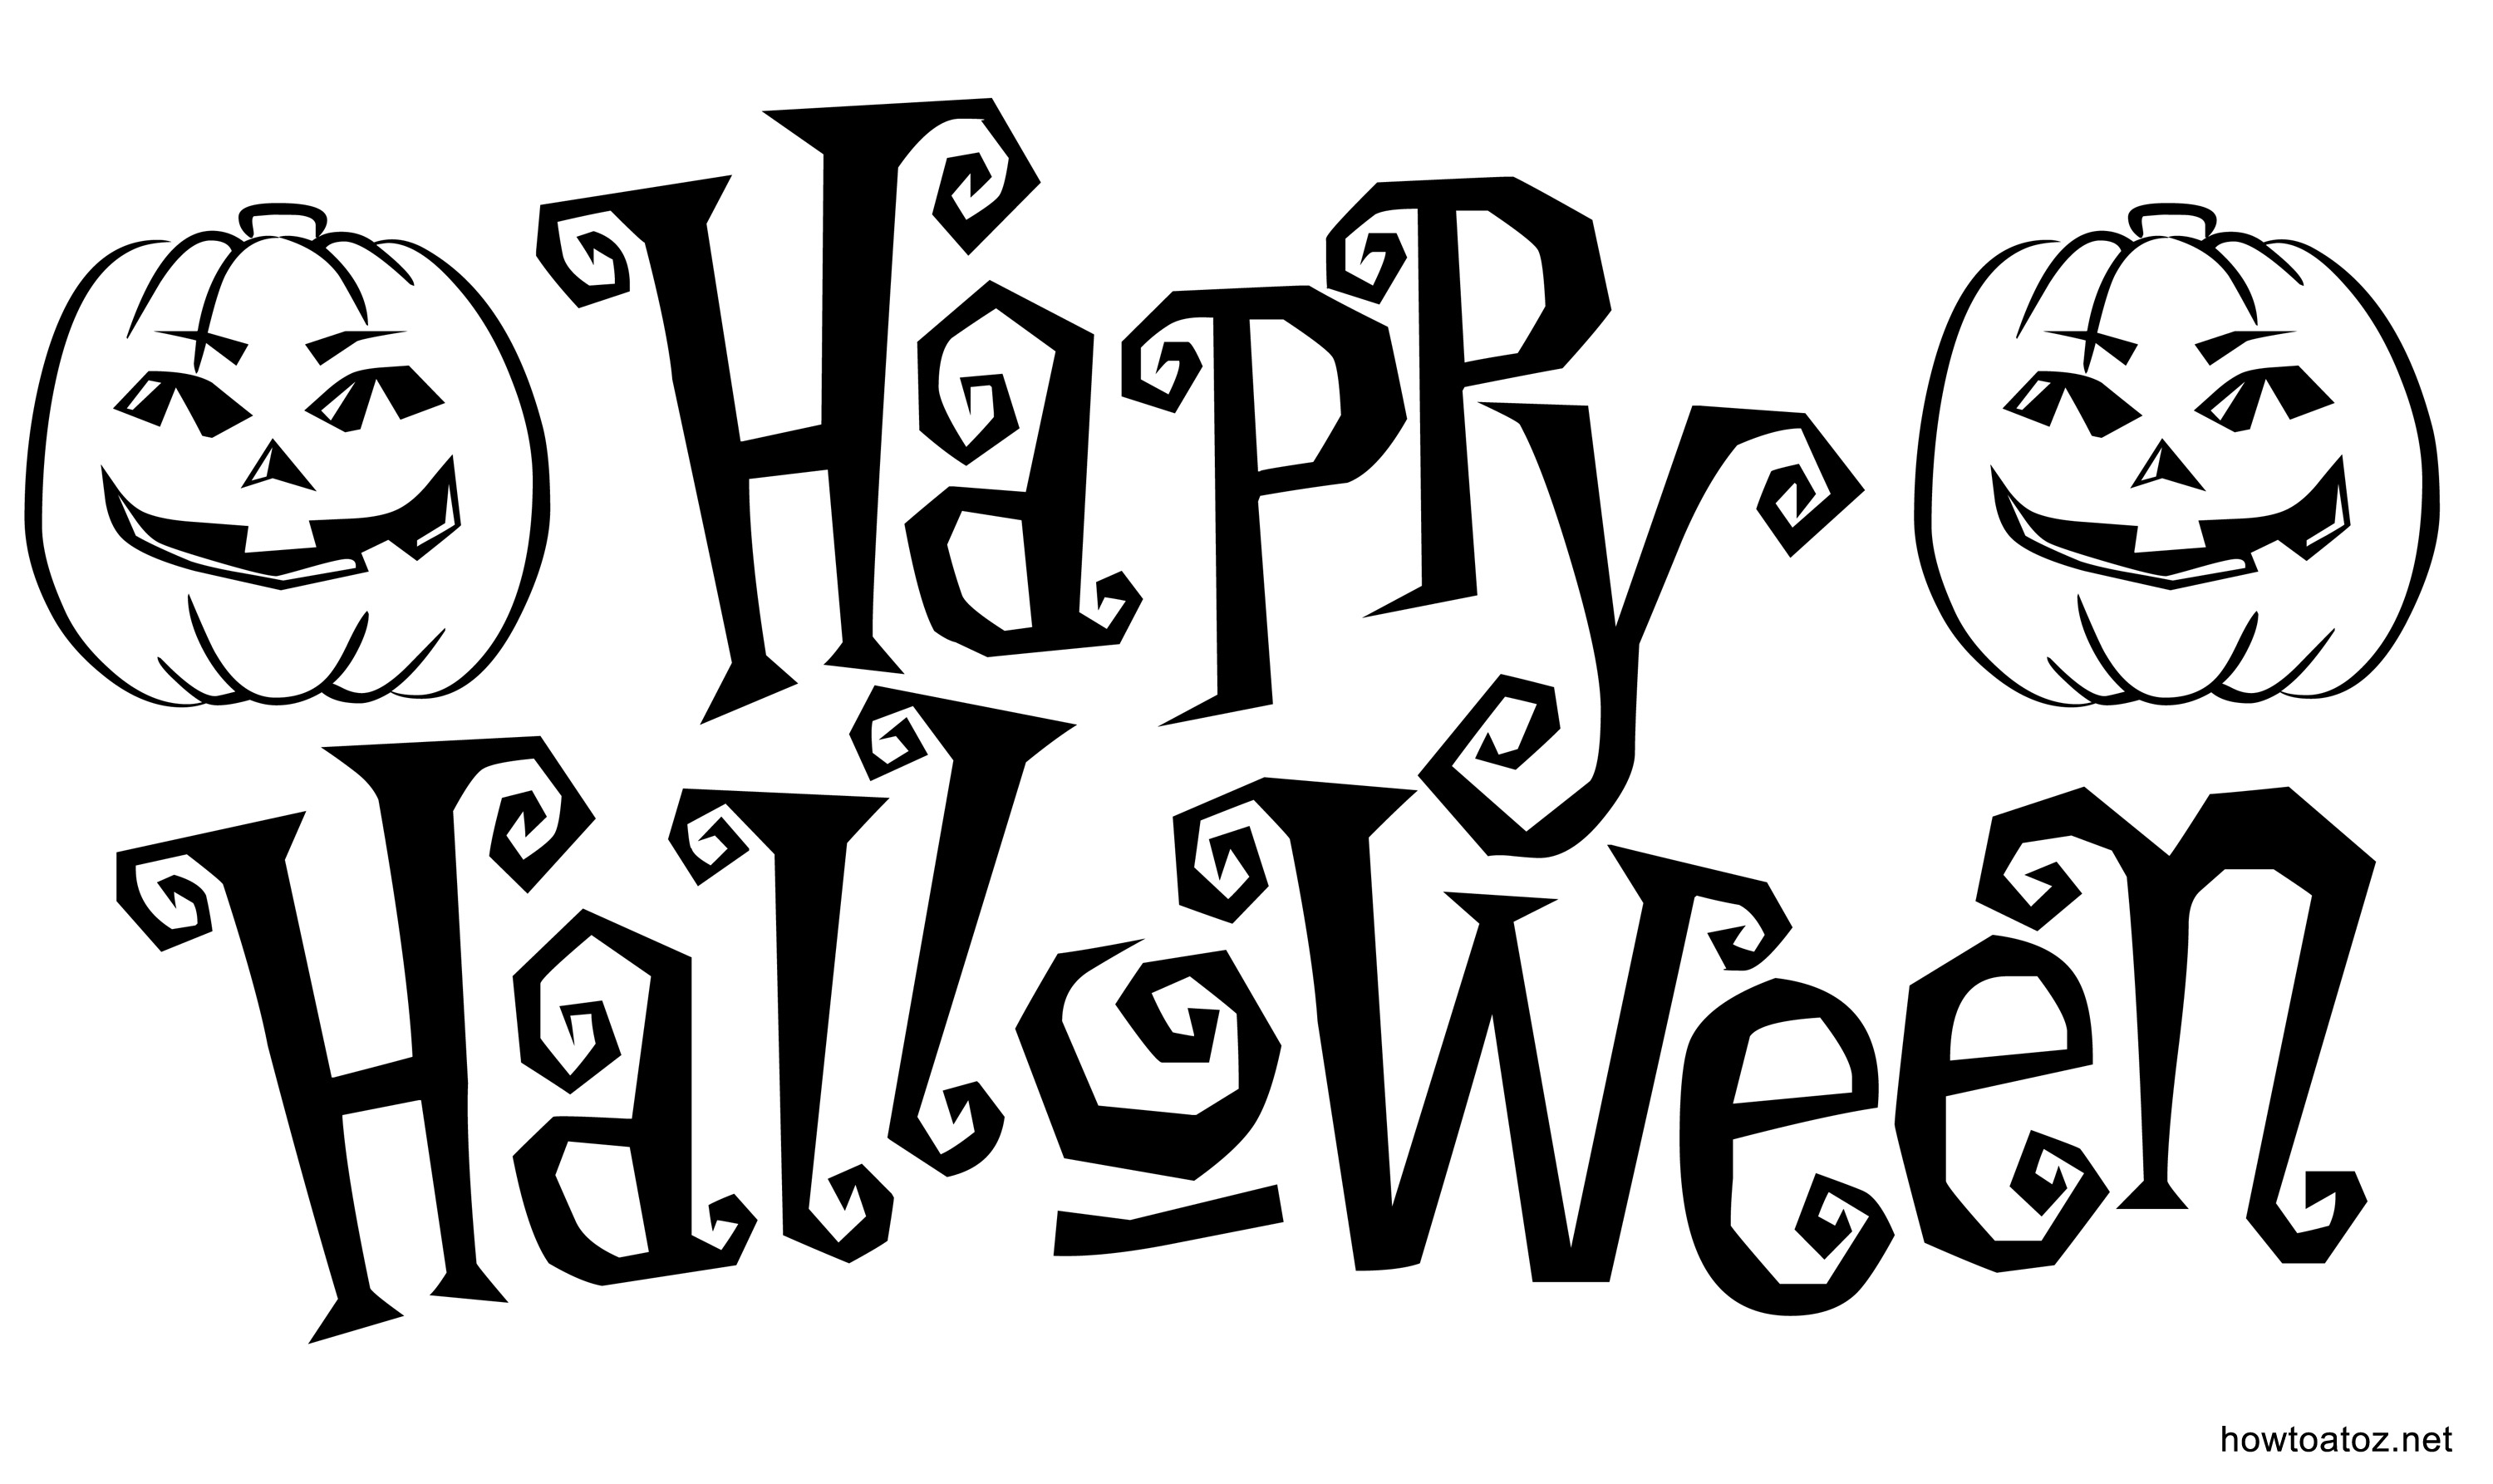 Halloween Decoration Stencils And Templates – How to A to Z